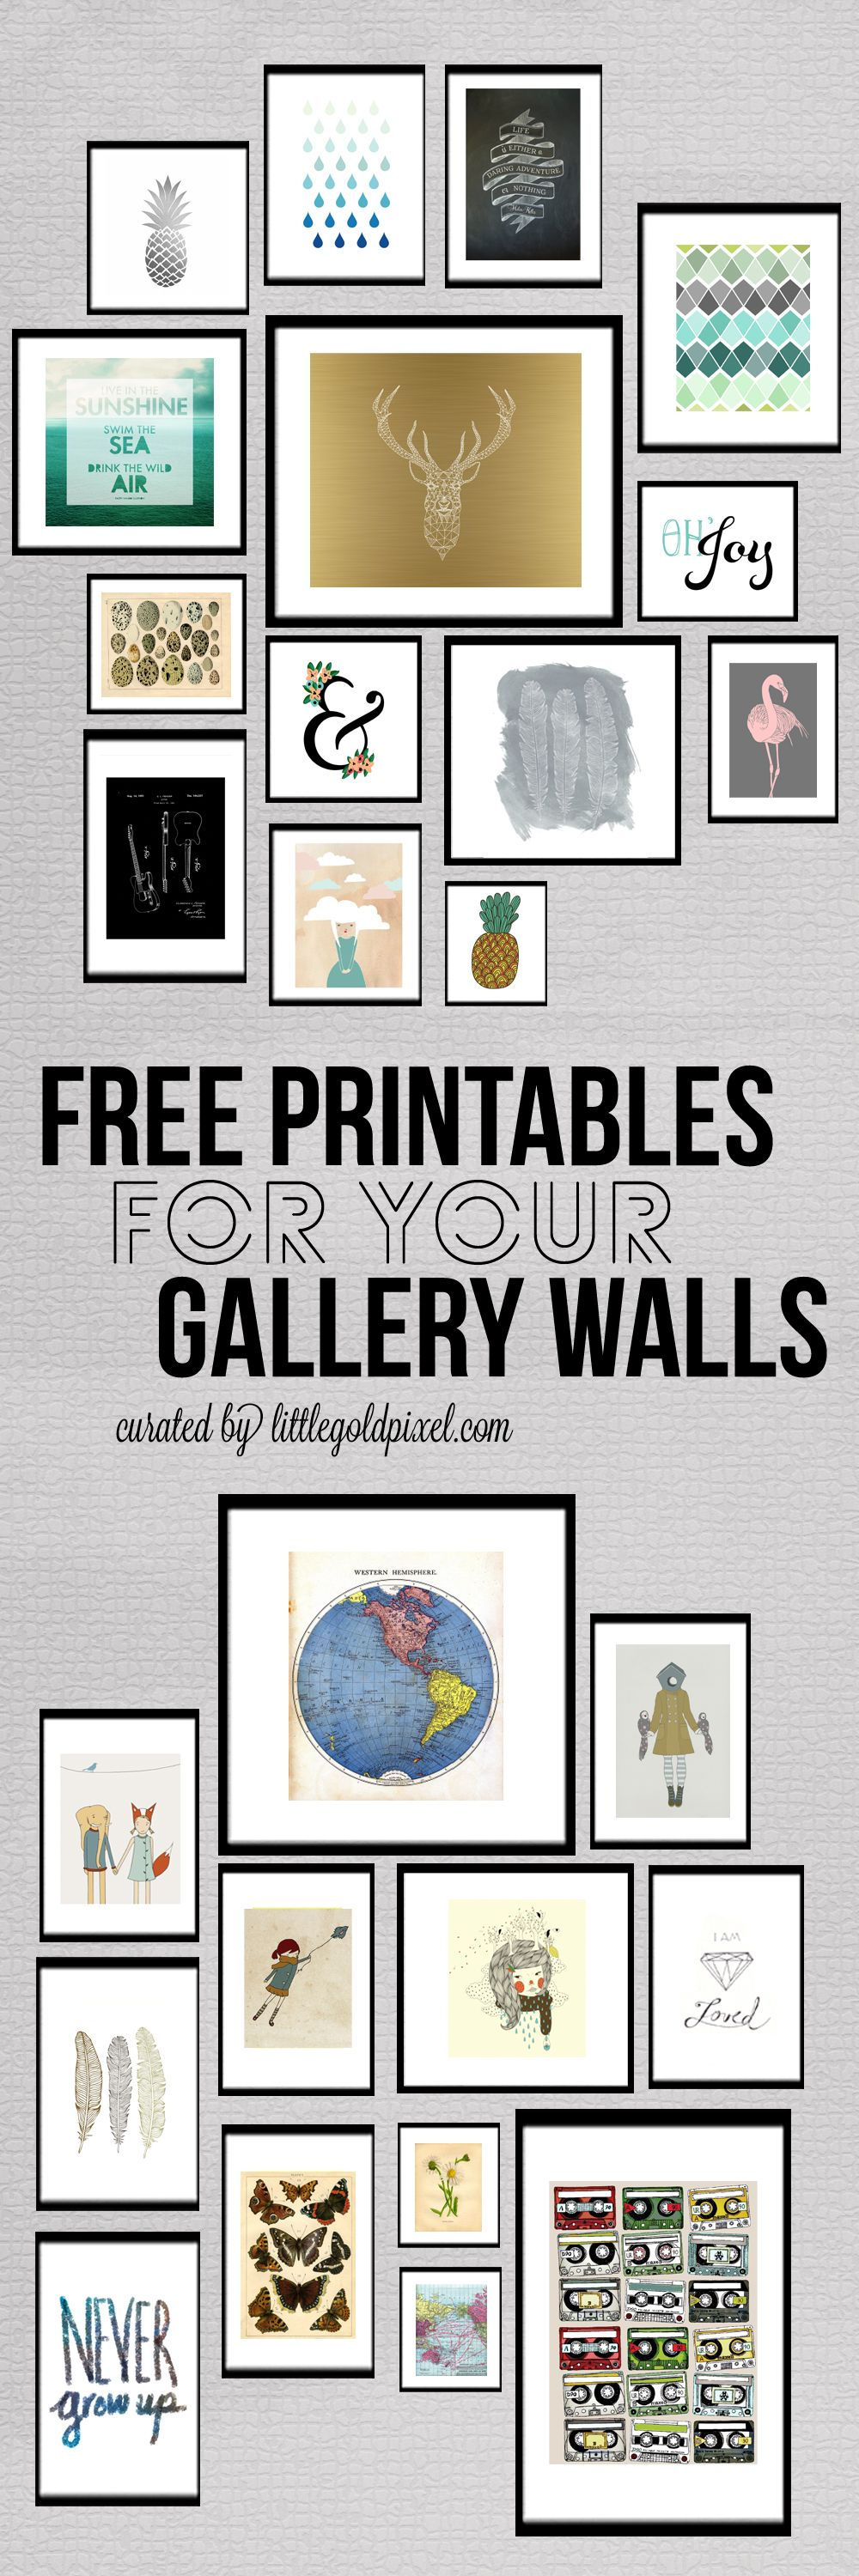 Roundup: Free Printables for Gallery Walls | Embellishments- Sayings